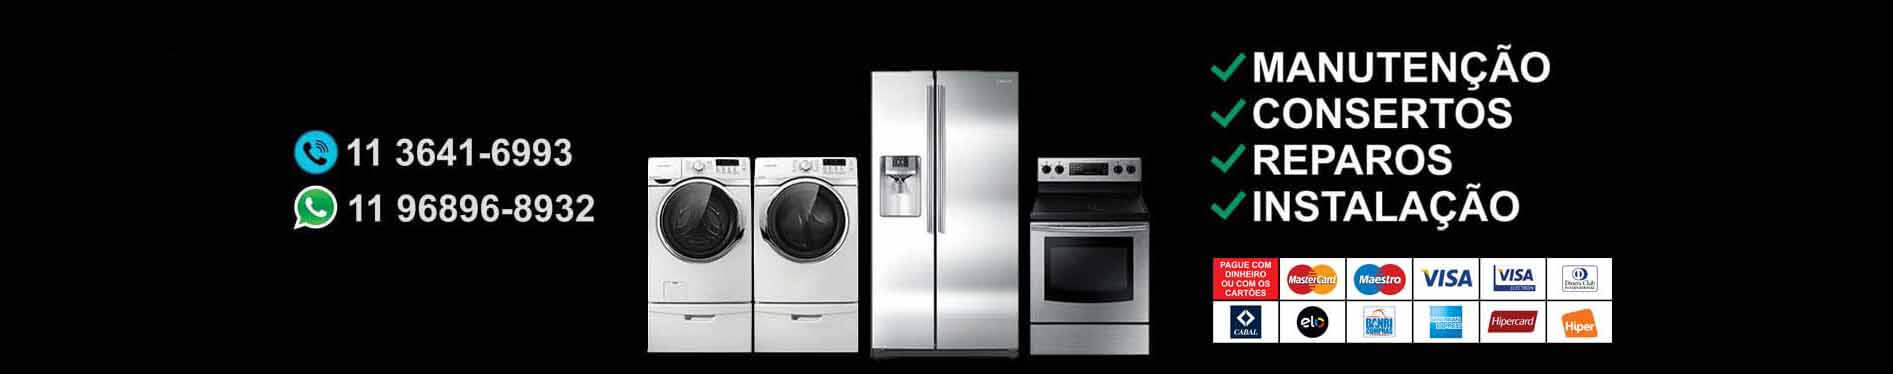 assistencia Electrolux